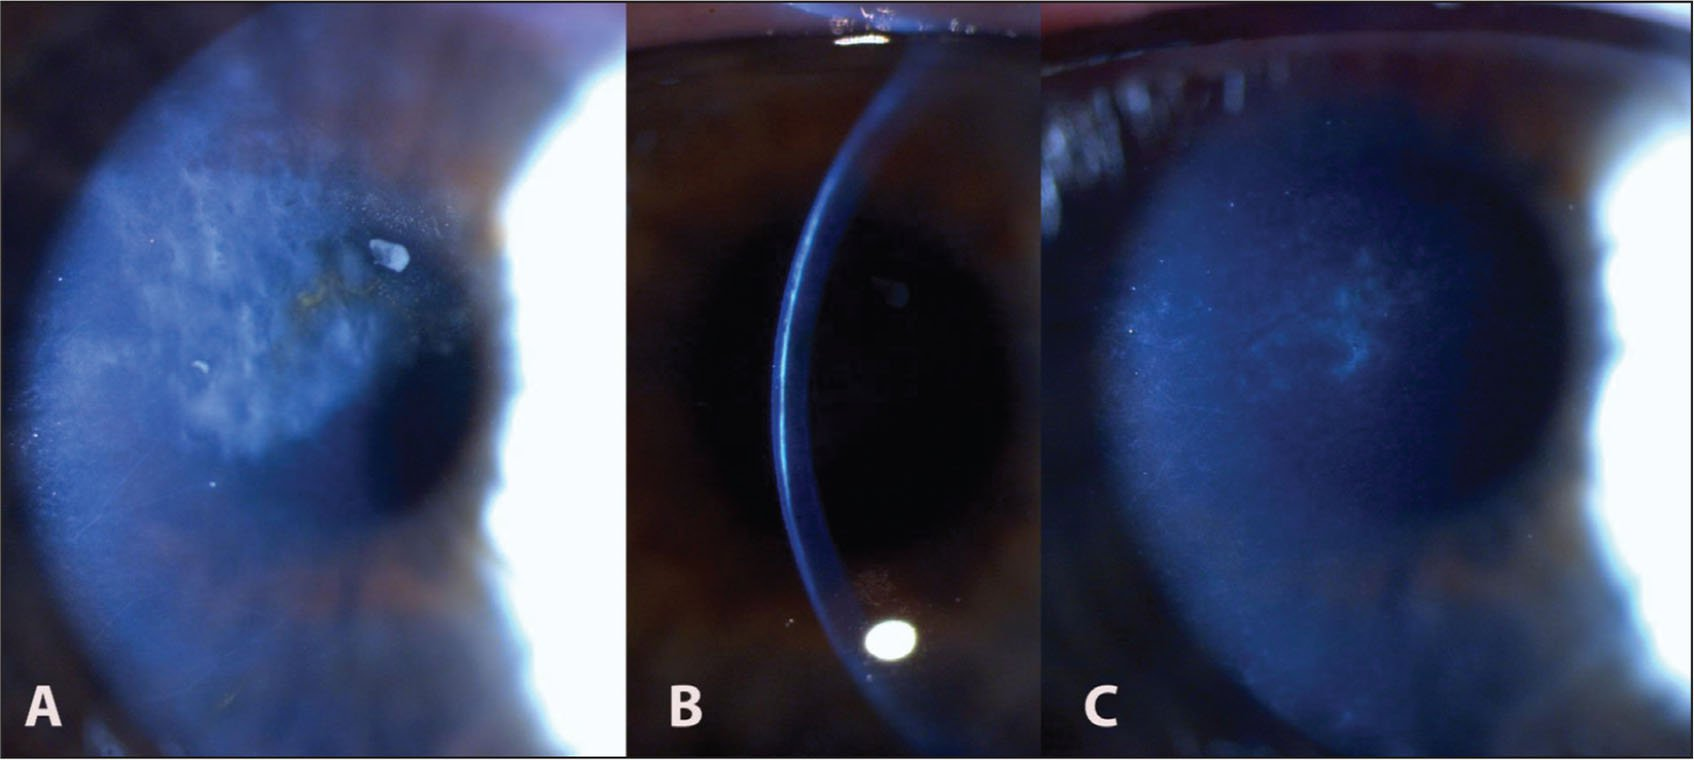 (A and B) Post-adenoviral dense stromal scar affecting the central cornea. (C) Significant improvement of the corneal opacity after surface ablation, with residual stromal haze.